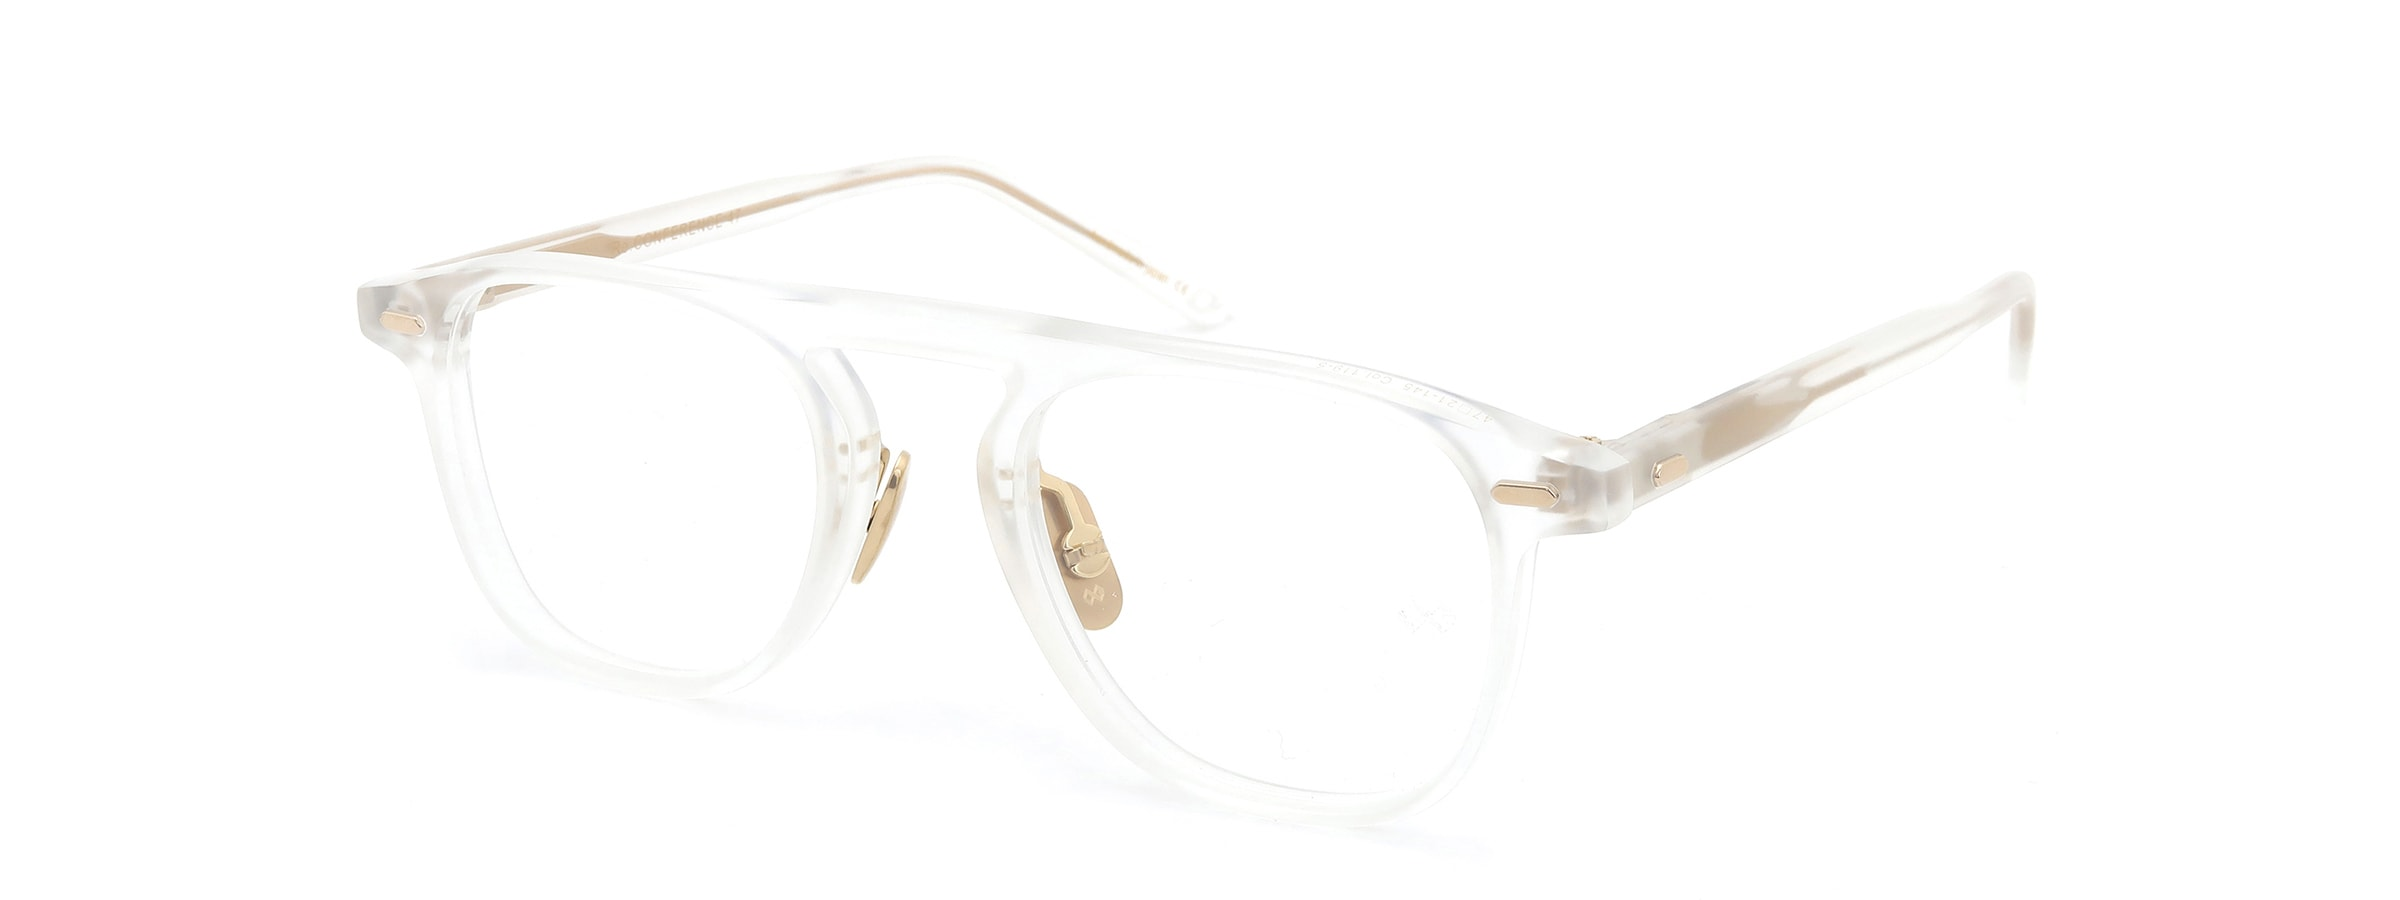 OG × OLIVER GOLDSMITH Re:CONFERENCE 47 リ:カンファレンス